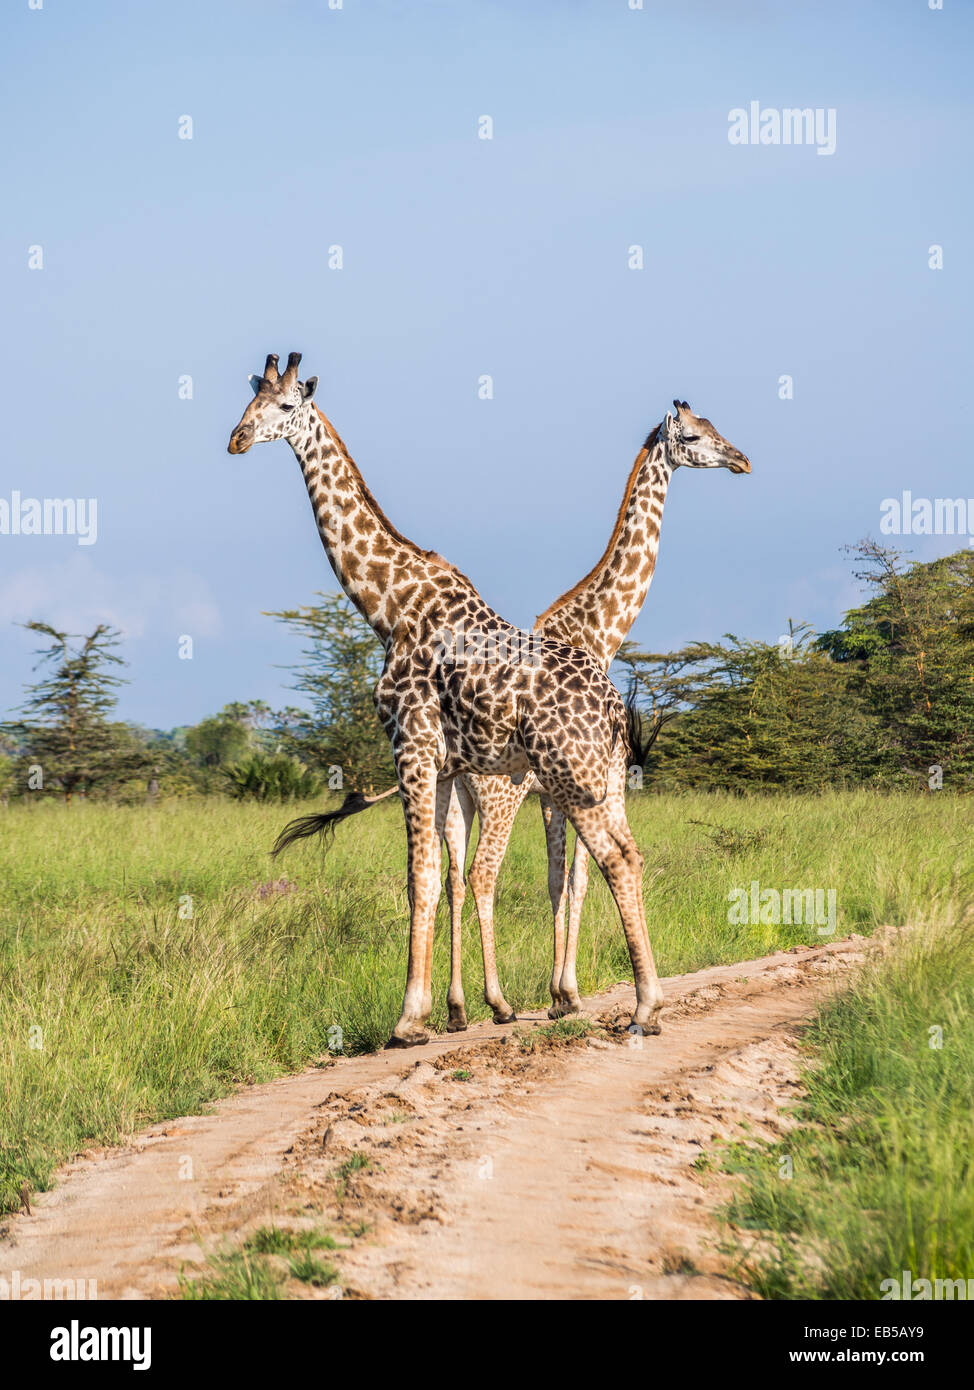 Two giraffes crossing a road on the savanna on safari in Serengeti National Park in Tanzania, Africa. Vertical orientation. - Stock Image